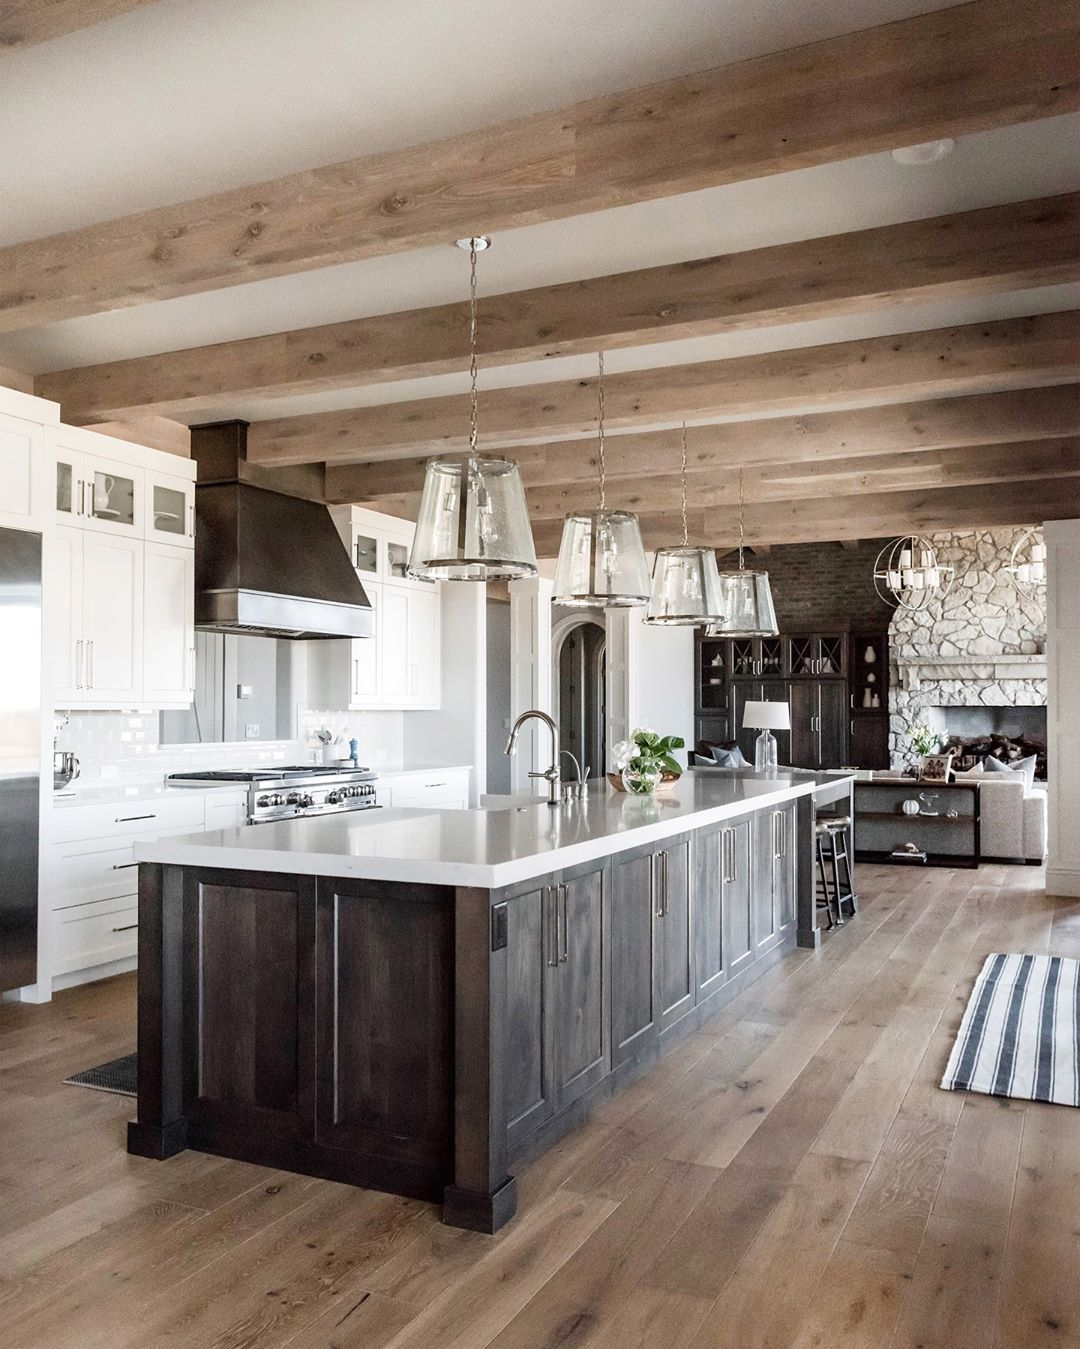 Love Dark Island Dark Range Light Floors White Or Great Wall Cabinets White Or Grey Counters Home Home Decor House Design